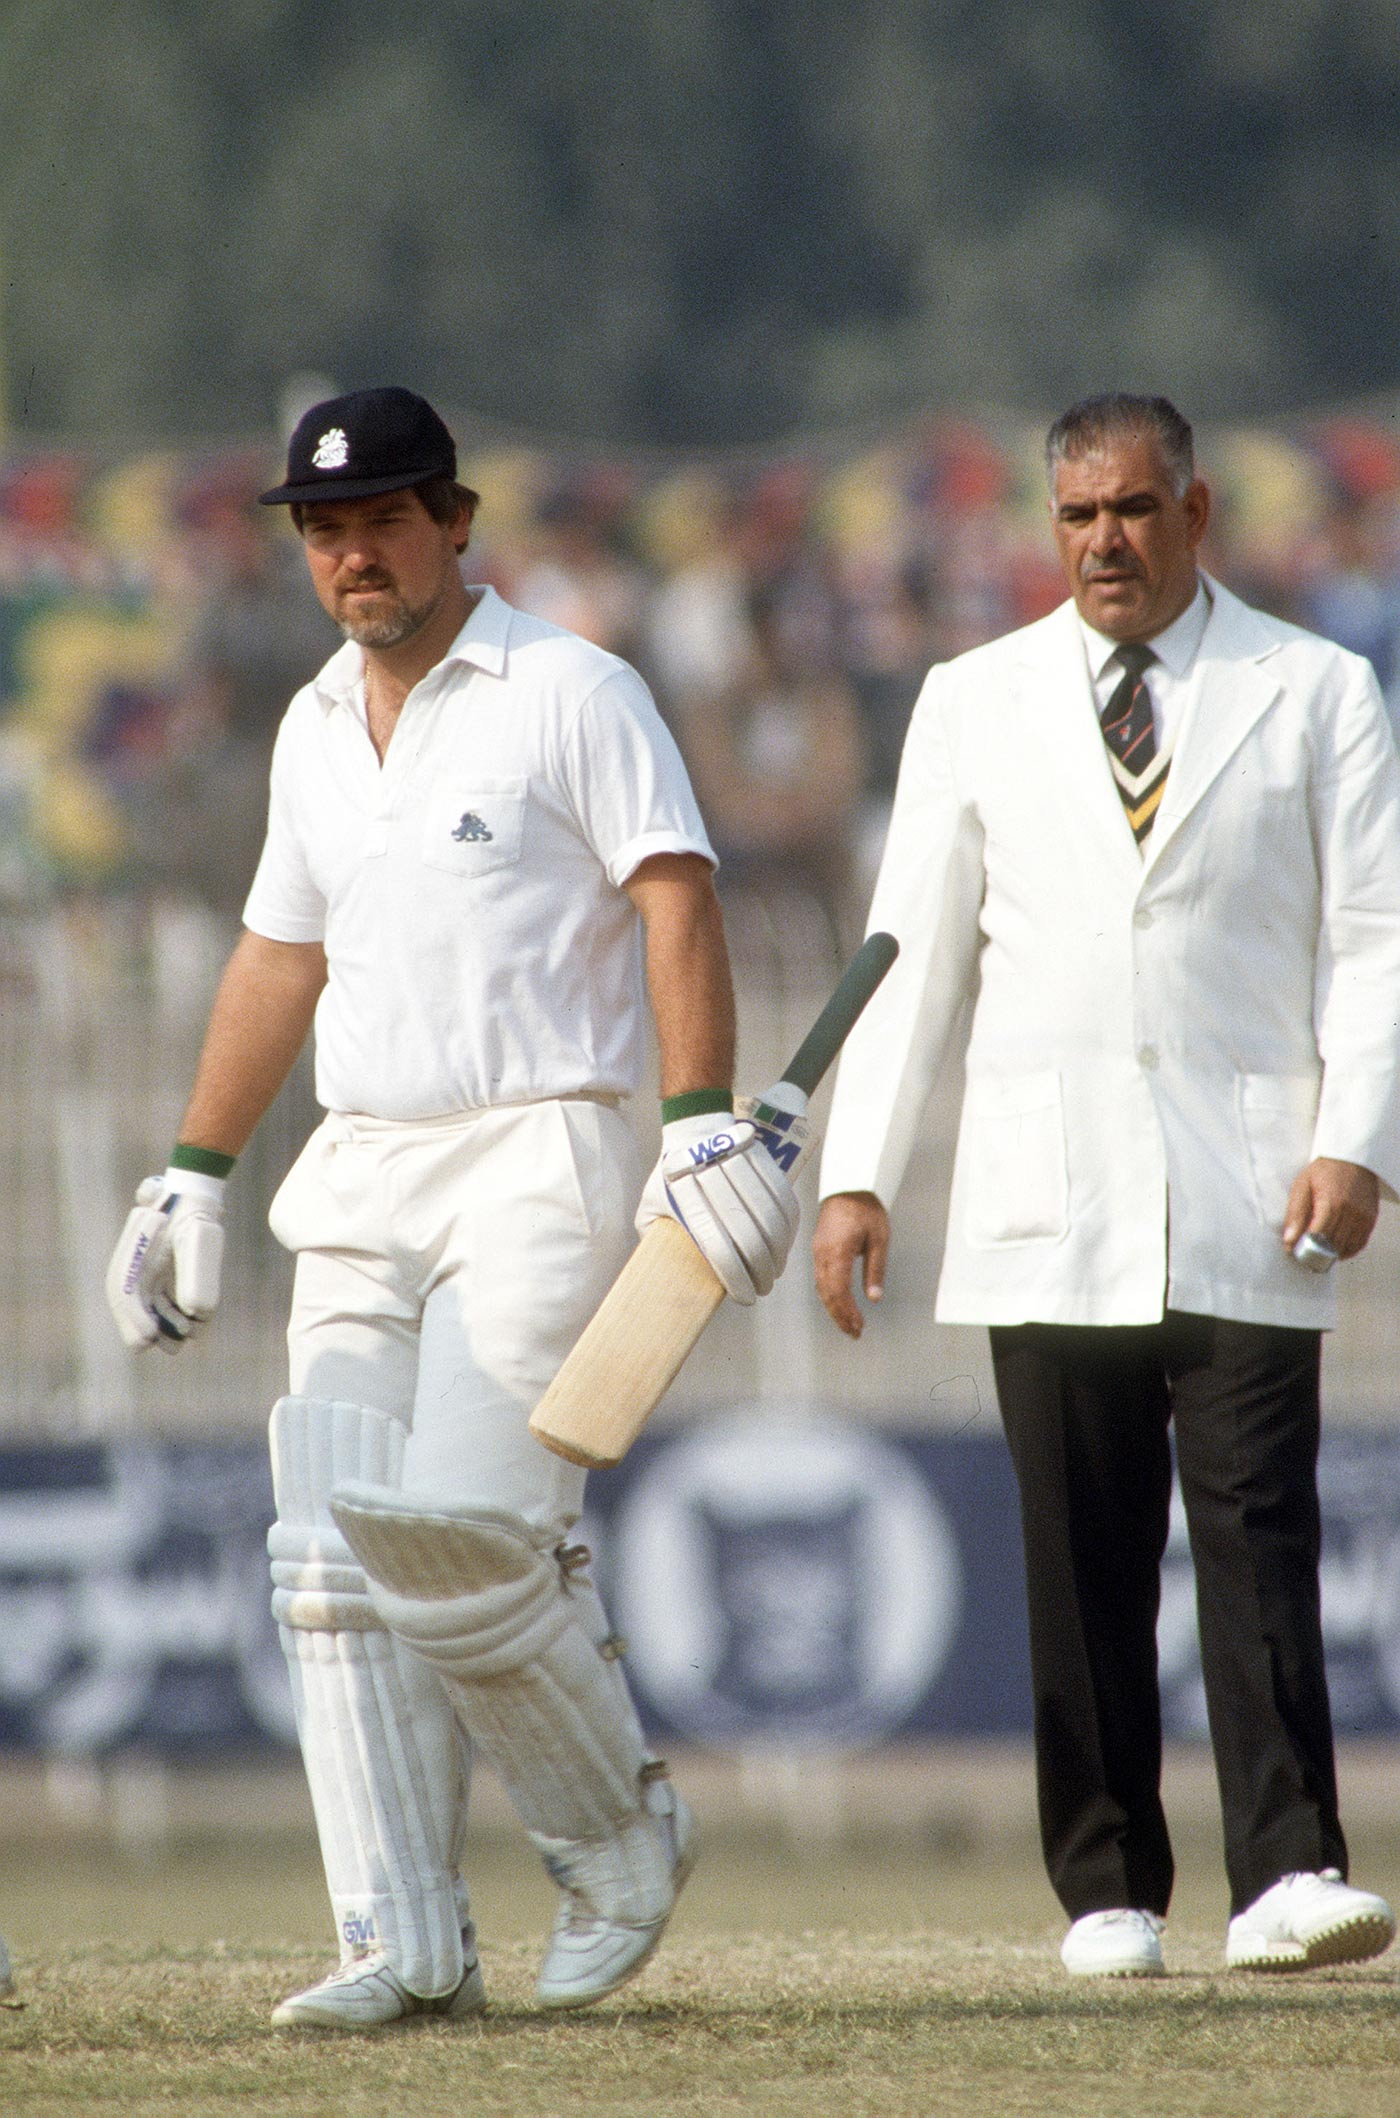 Gatting v Rana: surely the England captain should have copped some punishment for his behaviour?